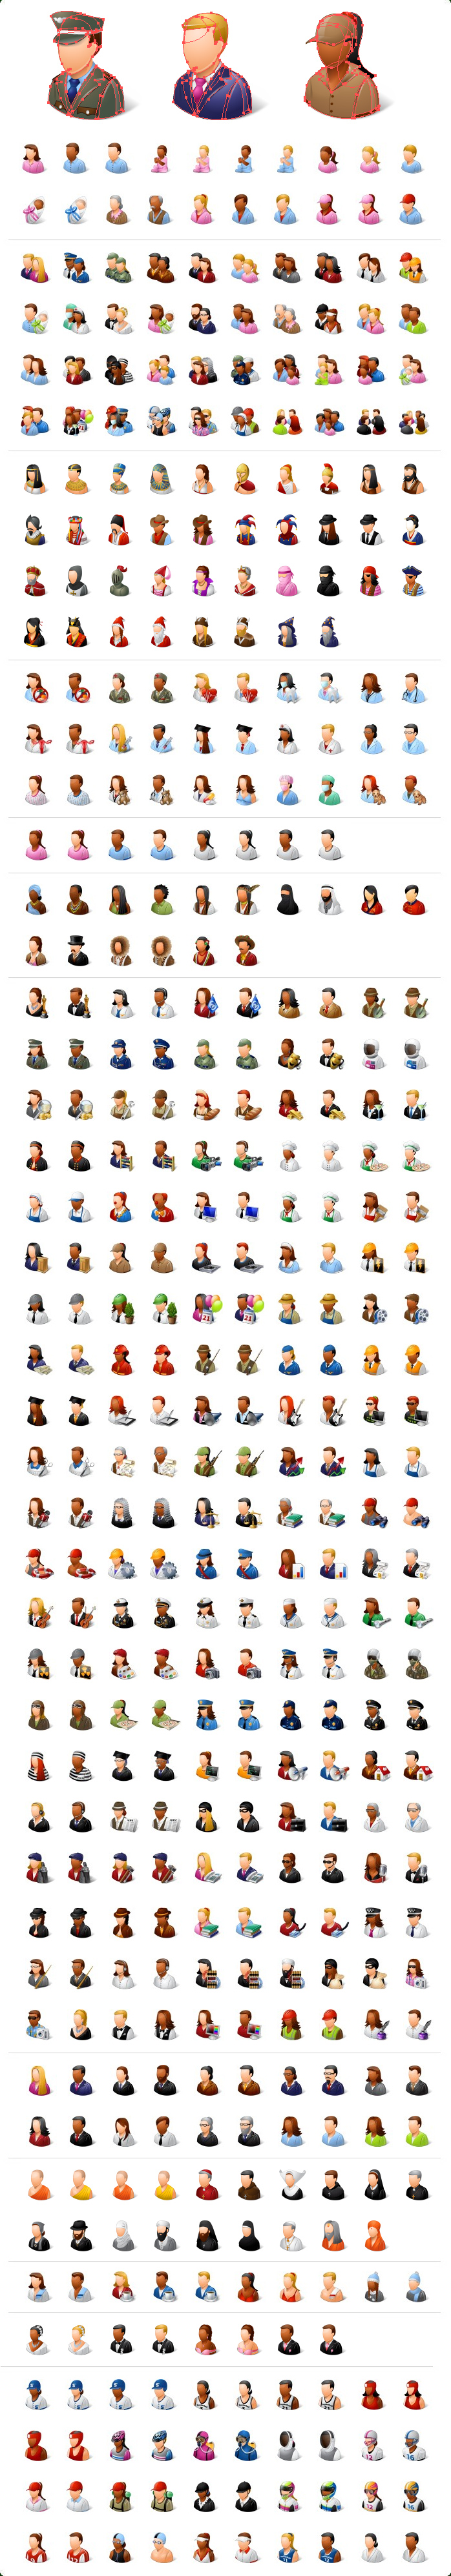 People Vector Icons Screenshot